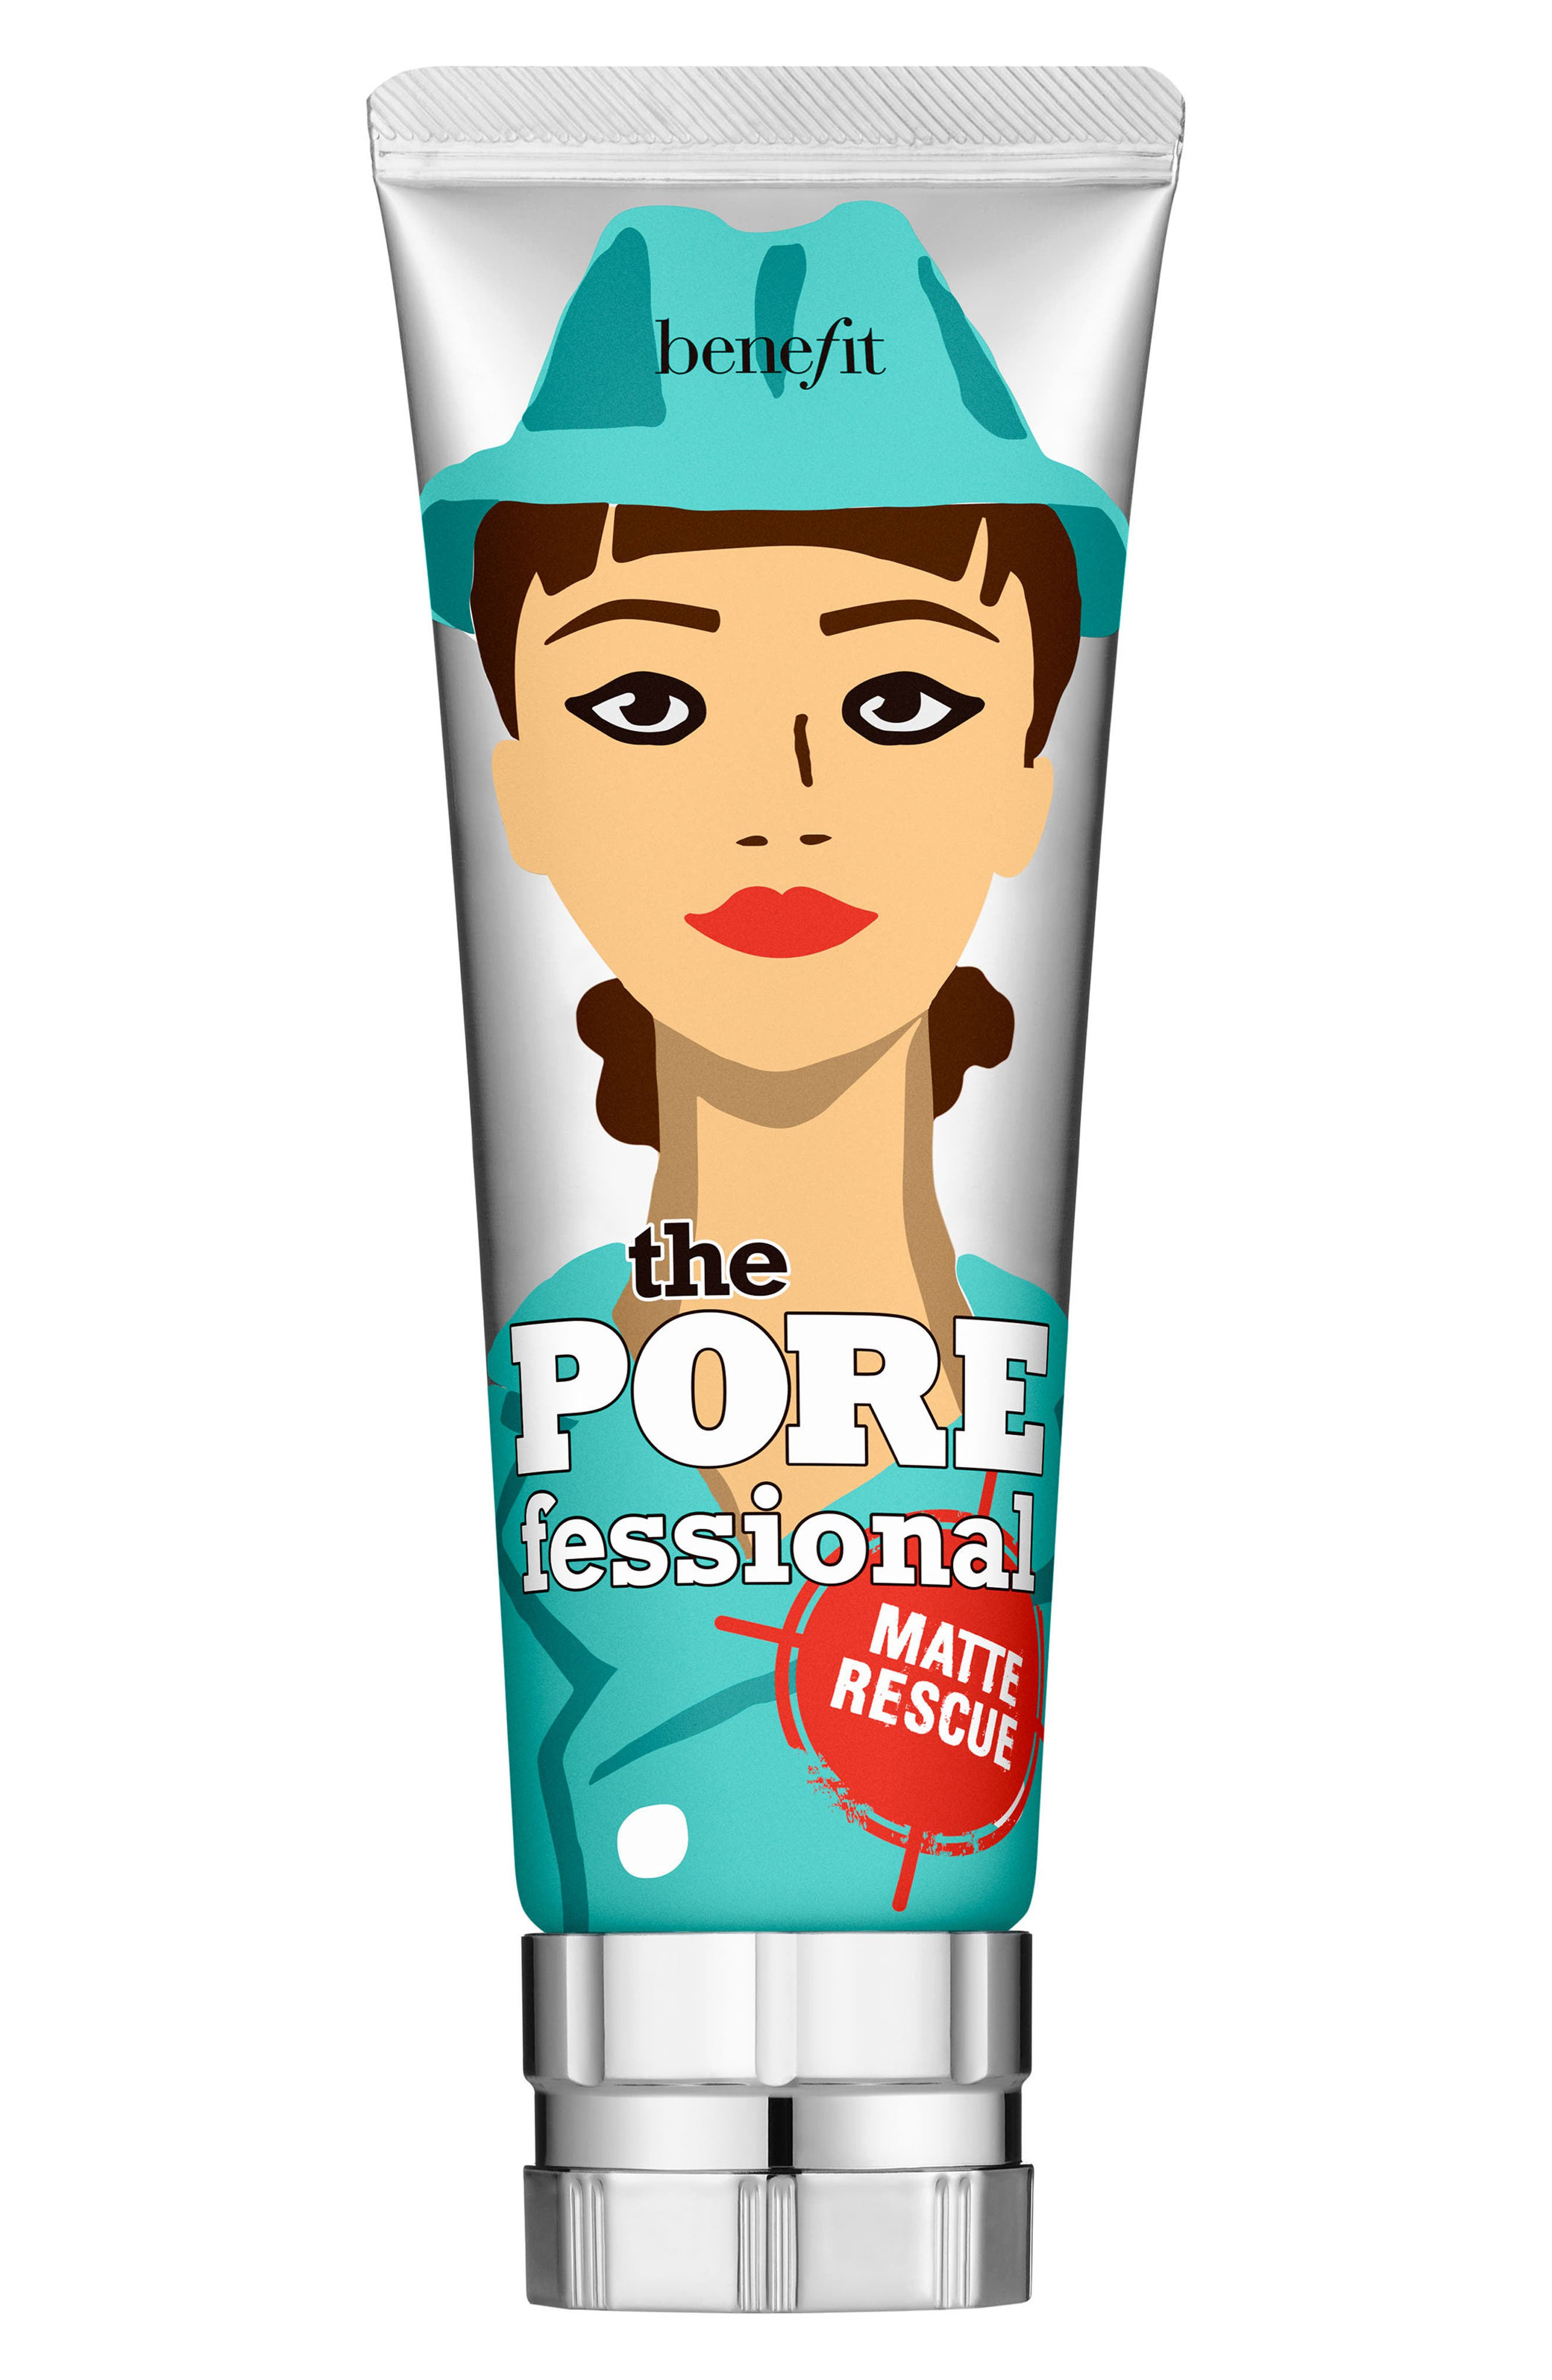 Alternate Image 1 Selected - Benefit The POREfessional Matte Rescue Mattifying Gel